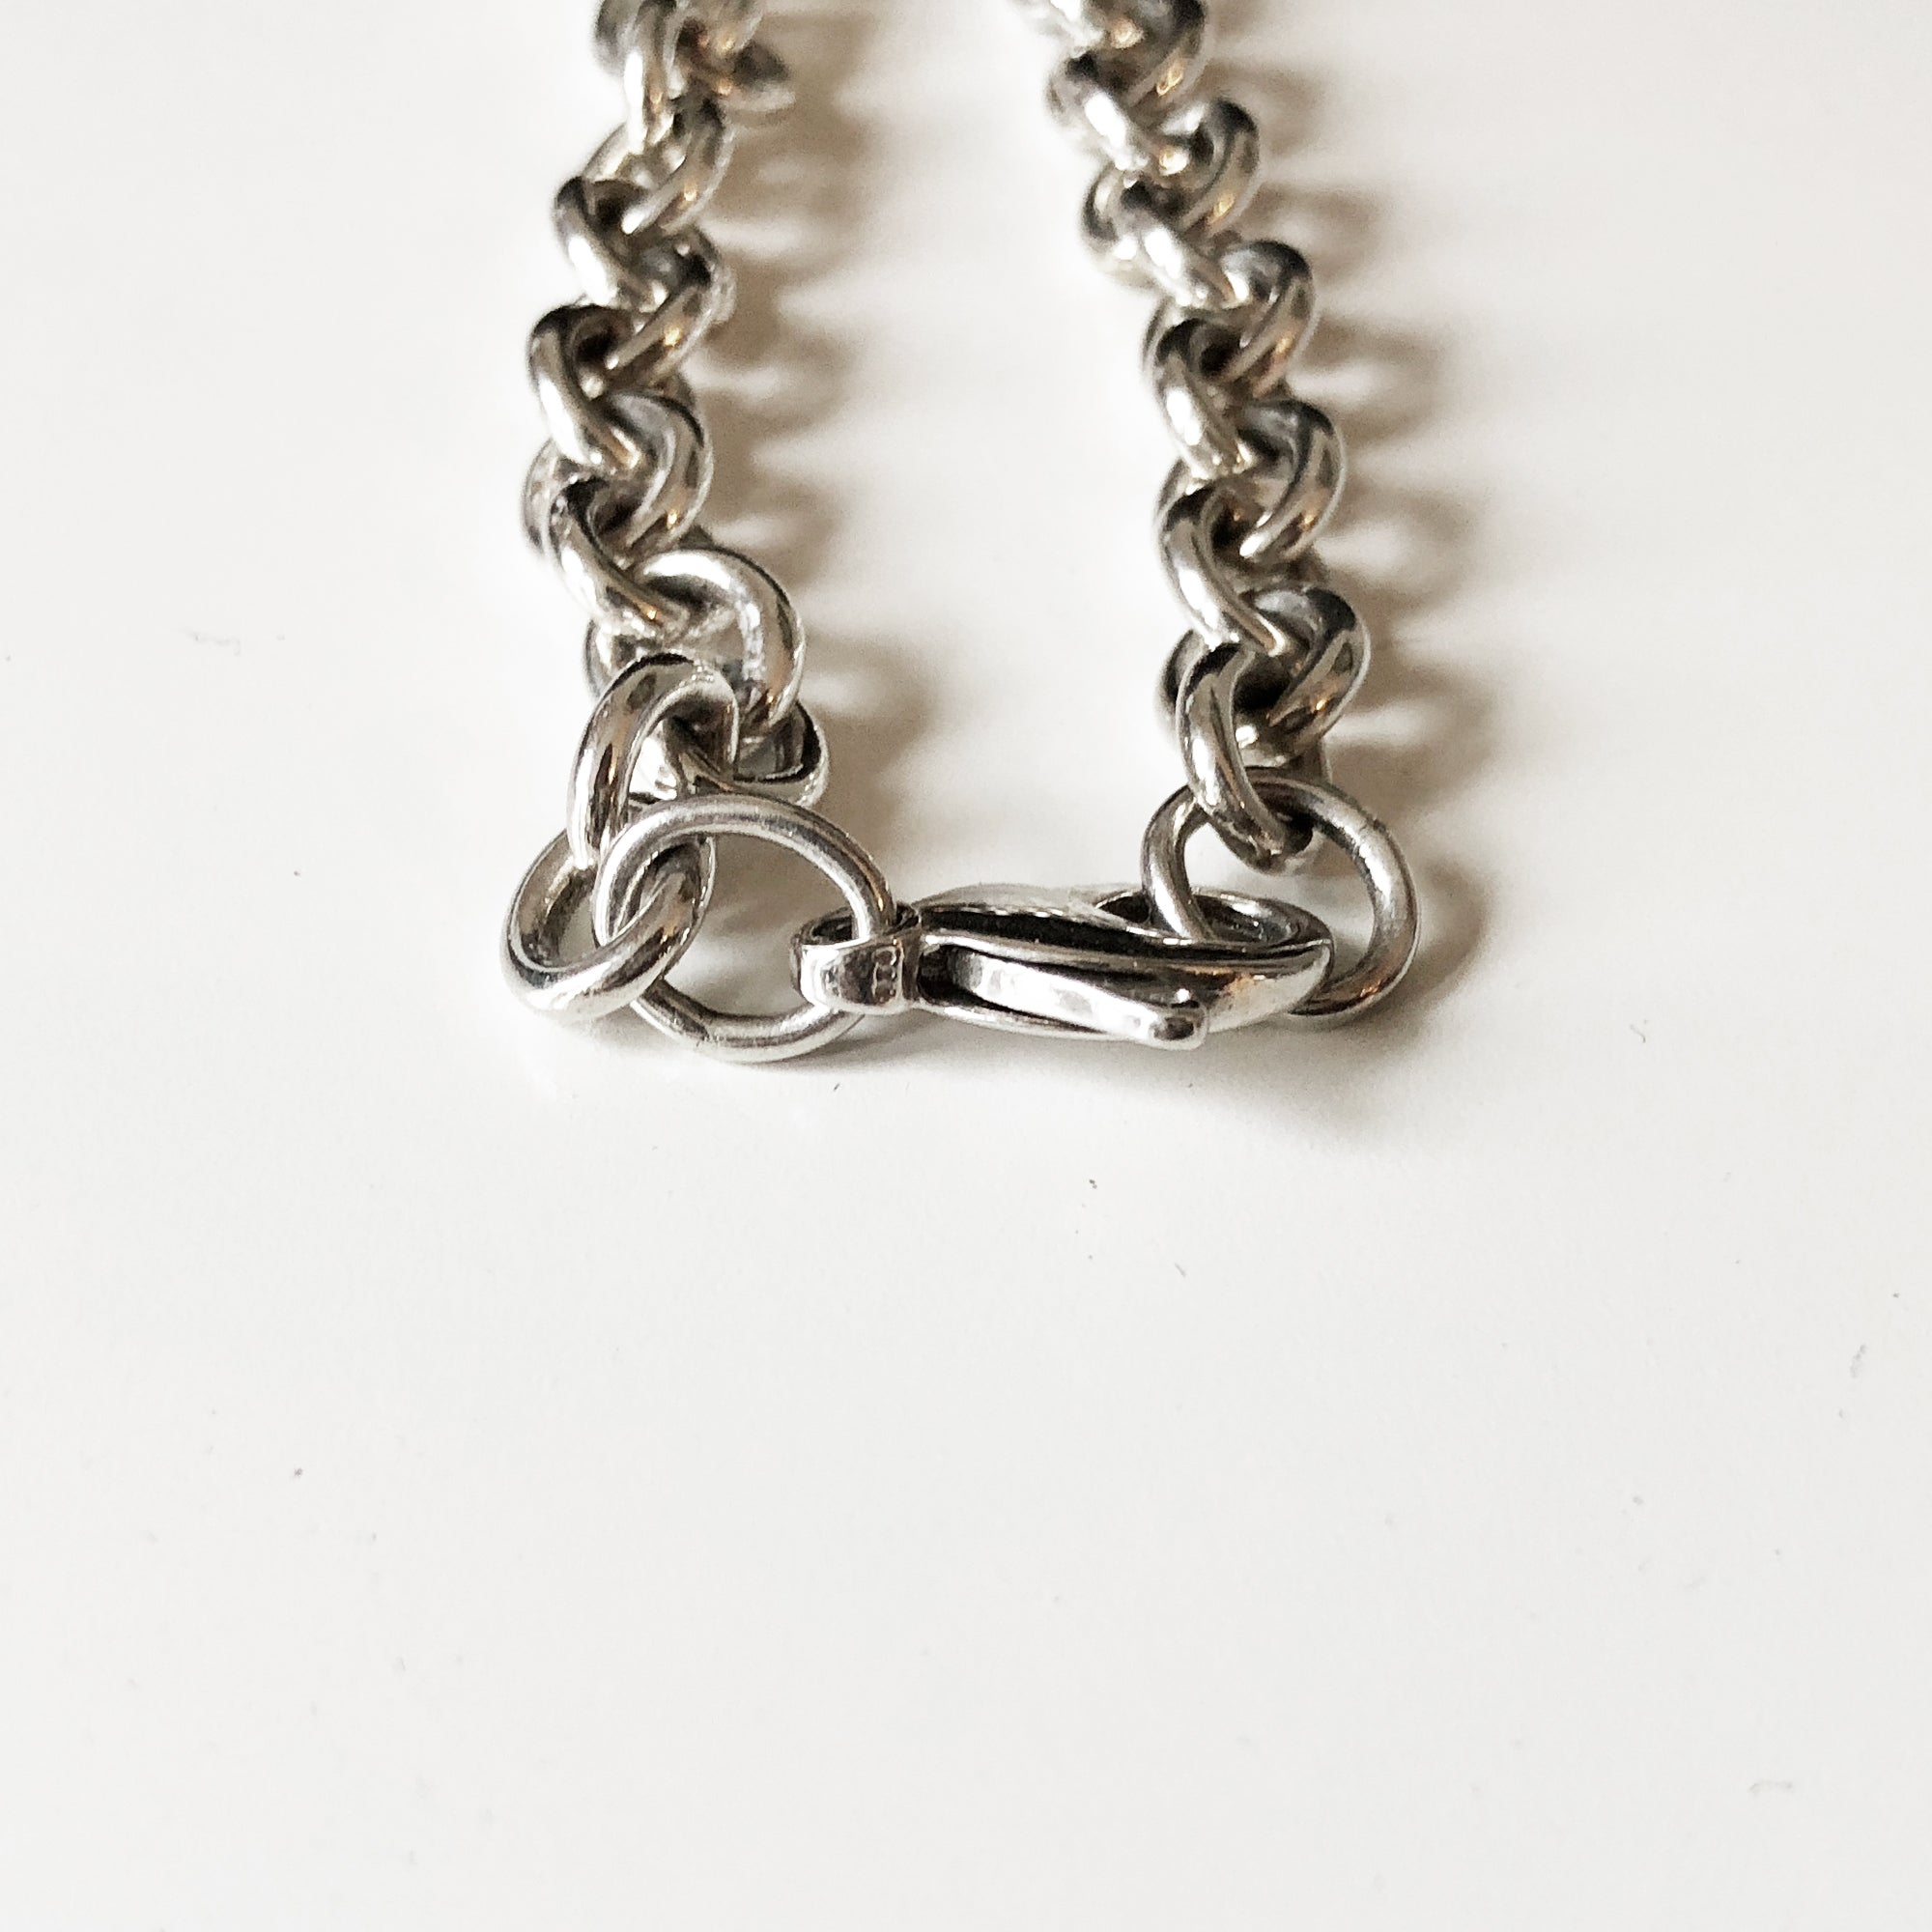 9277b3db6 ... TIFFANY & CO. HEART TAG BRACELET Shop online the best value on authentic  designer used